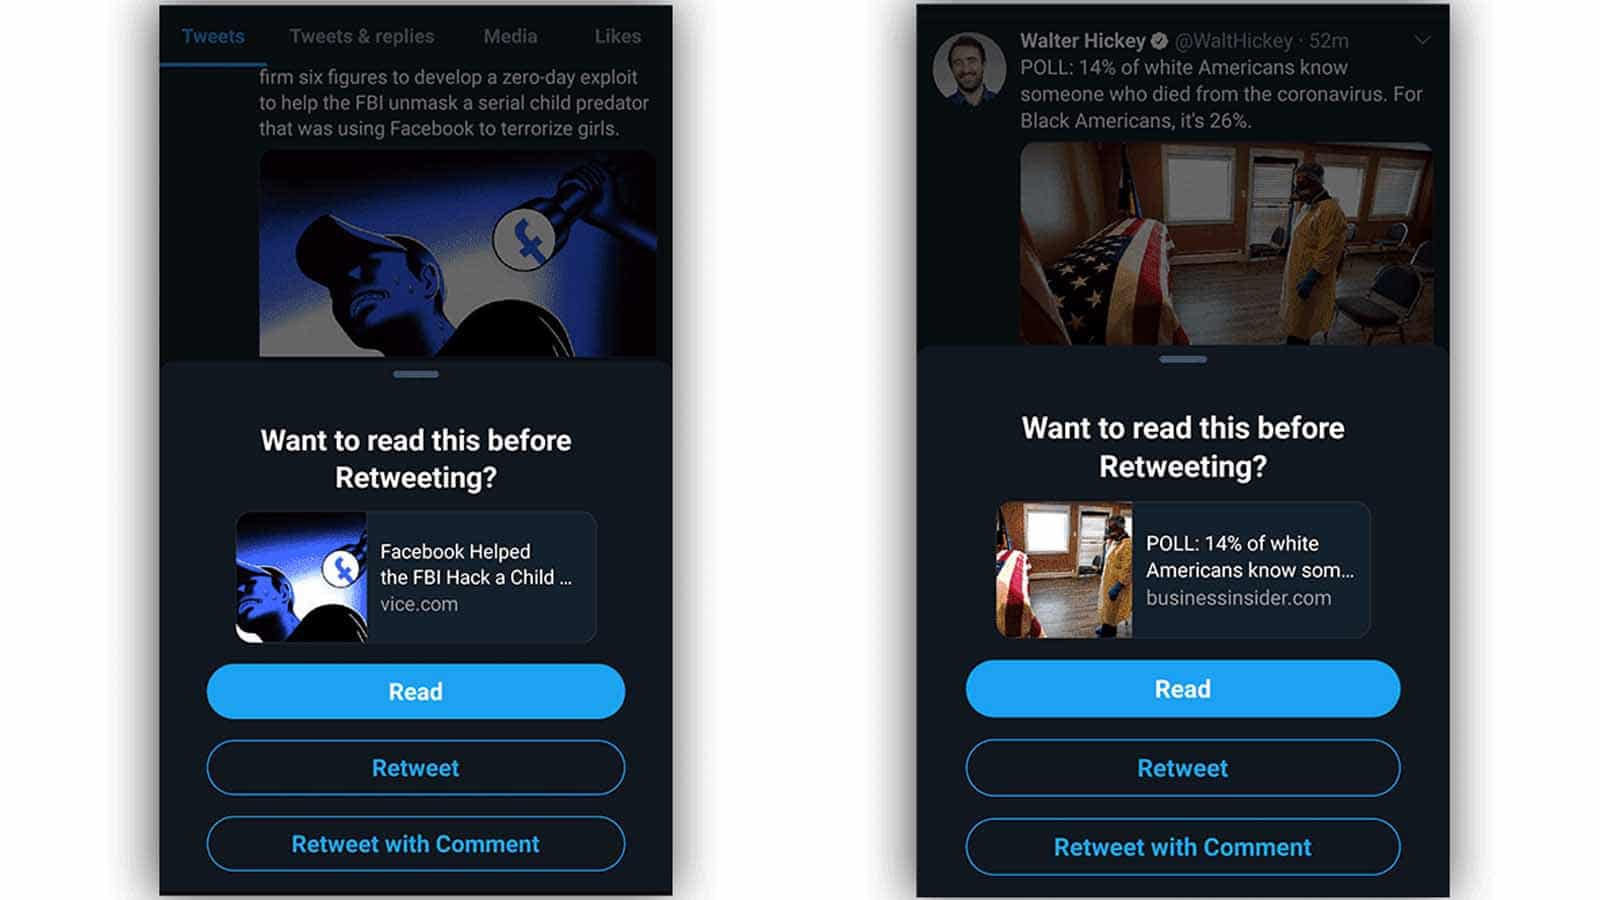 twitter read before retweeting android feature